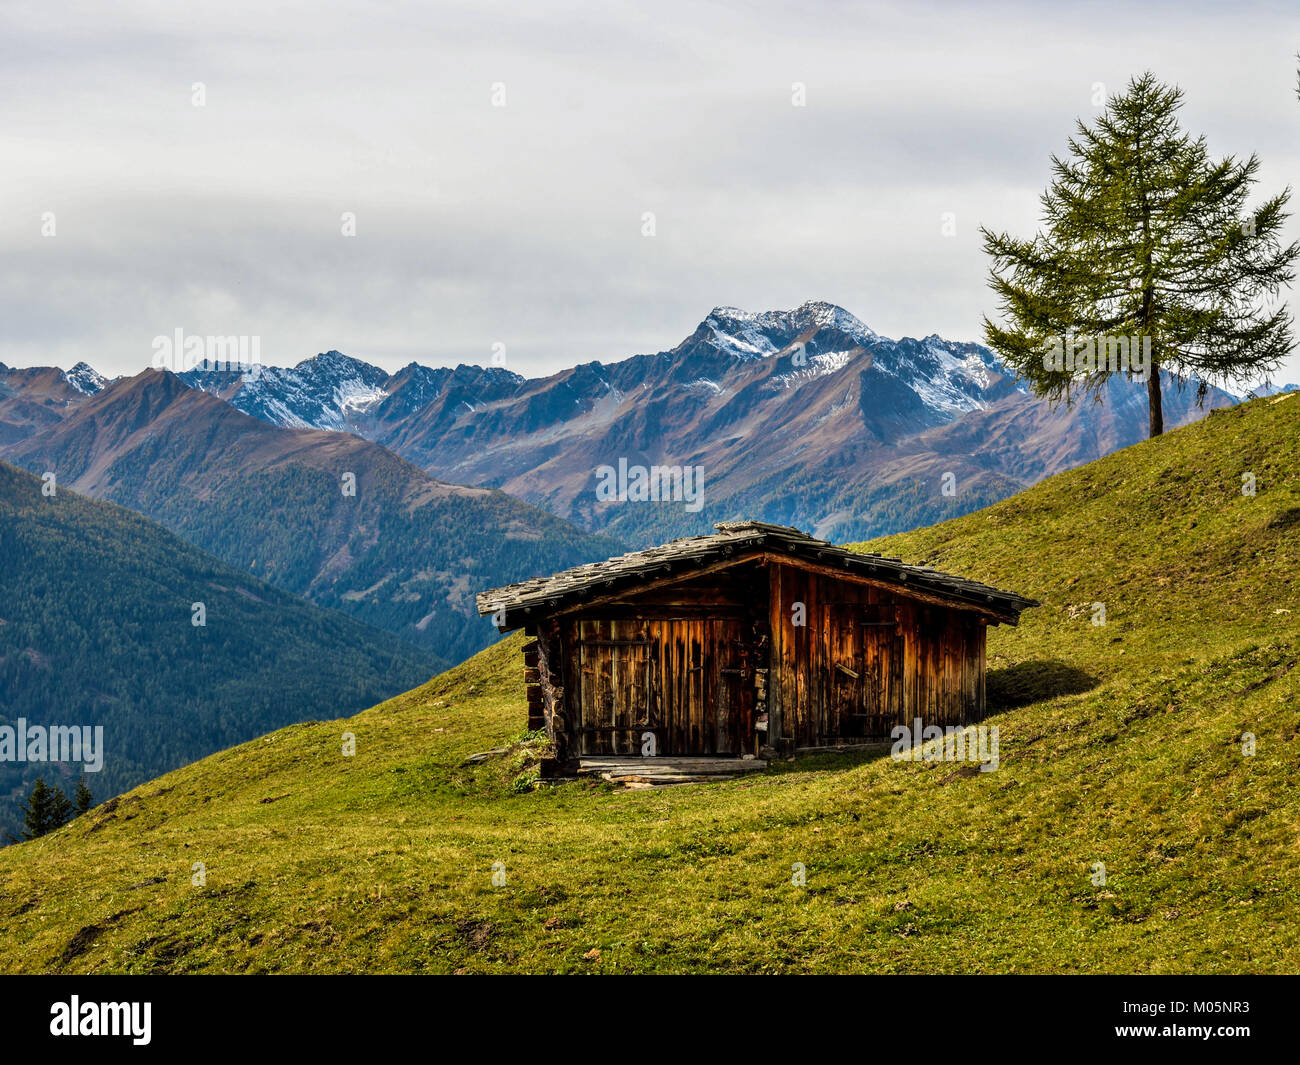 alpine hut or barne in front of Mt. Lasoerling in fall, East Tyrol, Austria, Europe - Stock Image